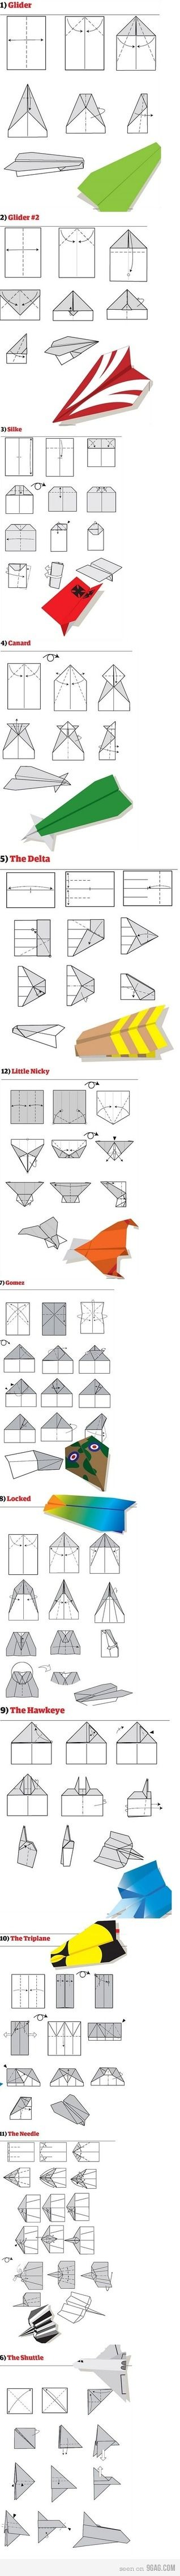 Paper airplane instructions.